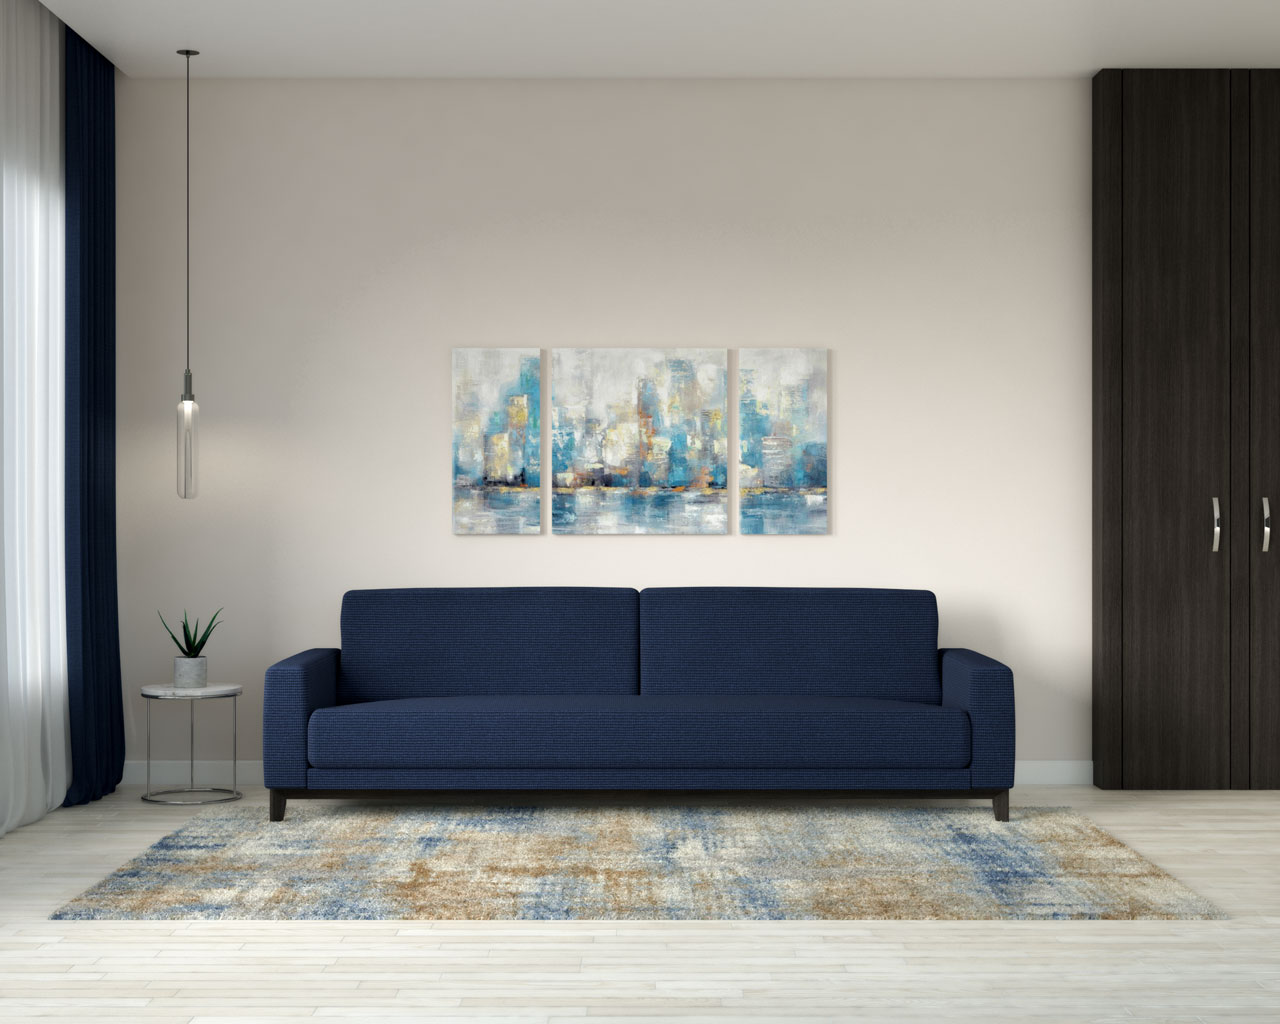 Beige wall with navy blue couch